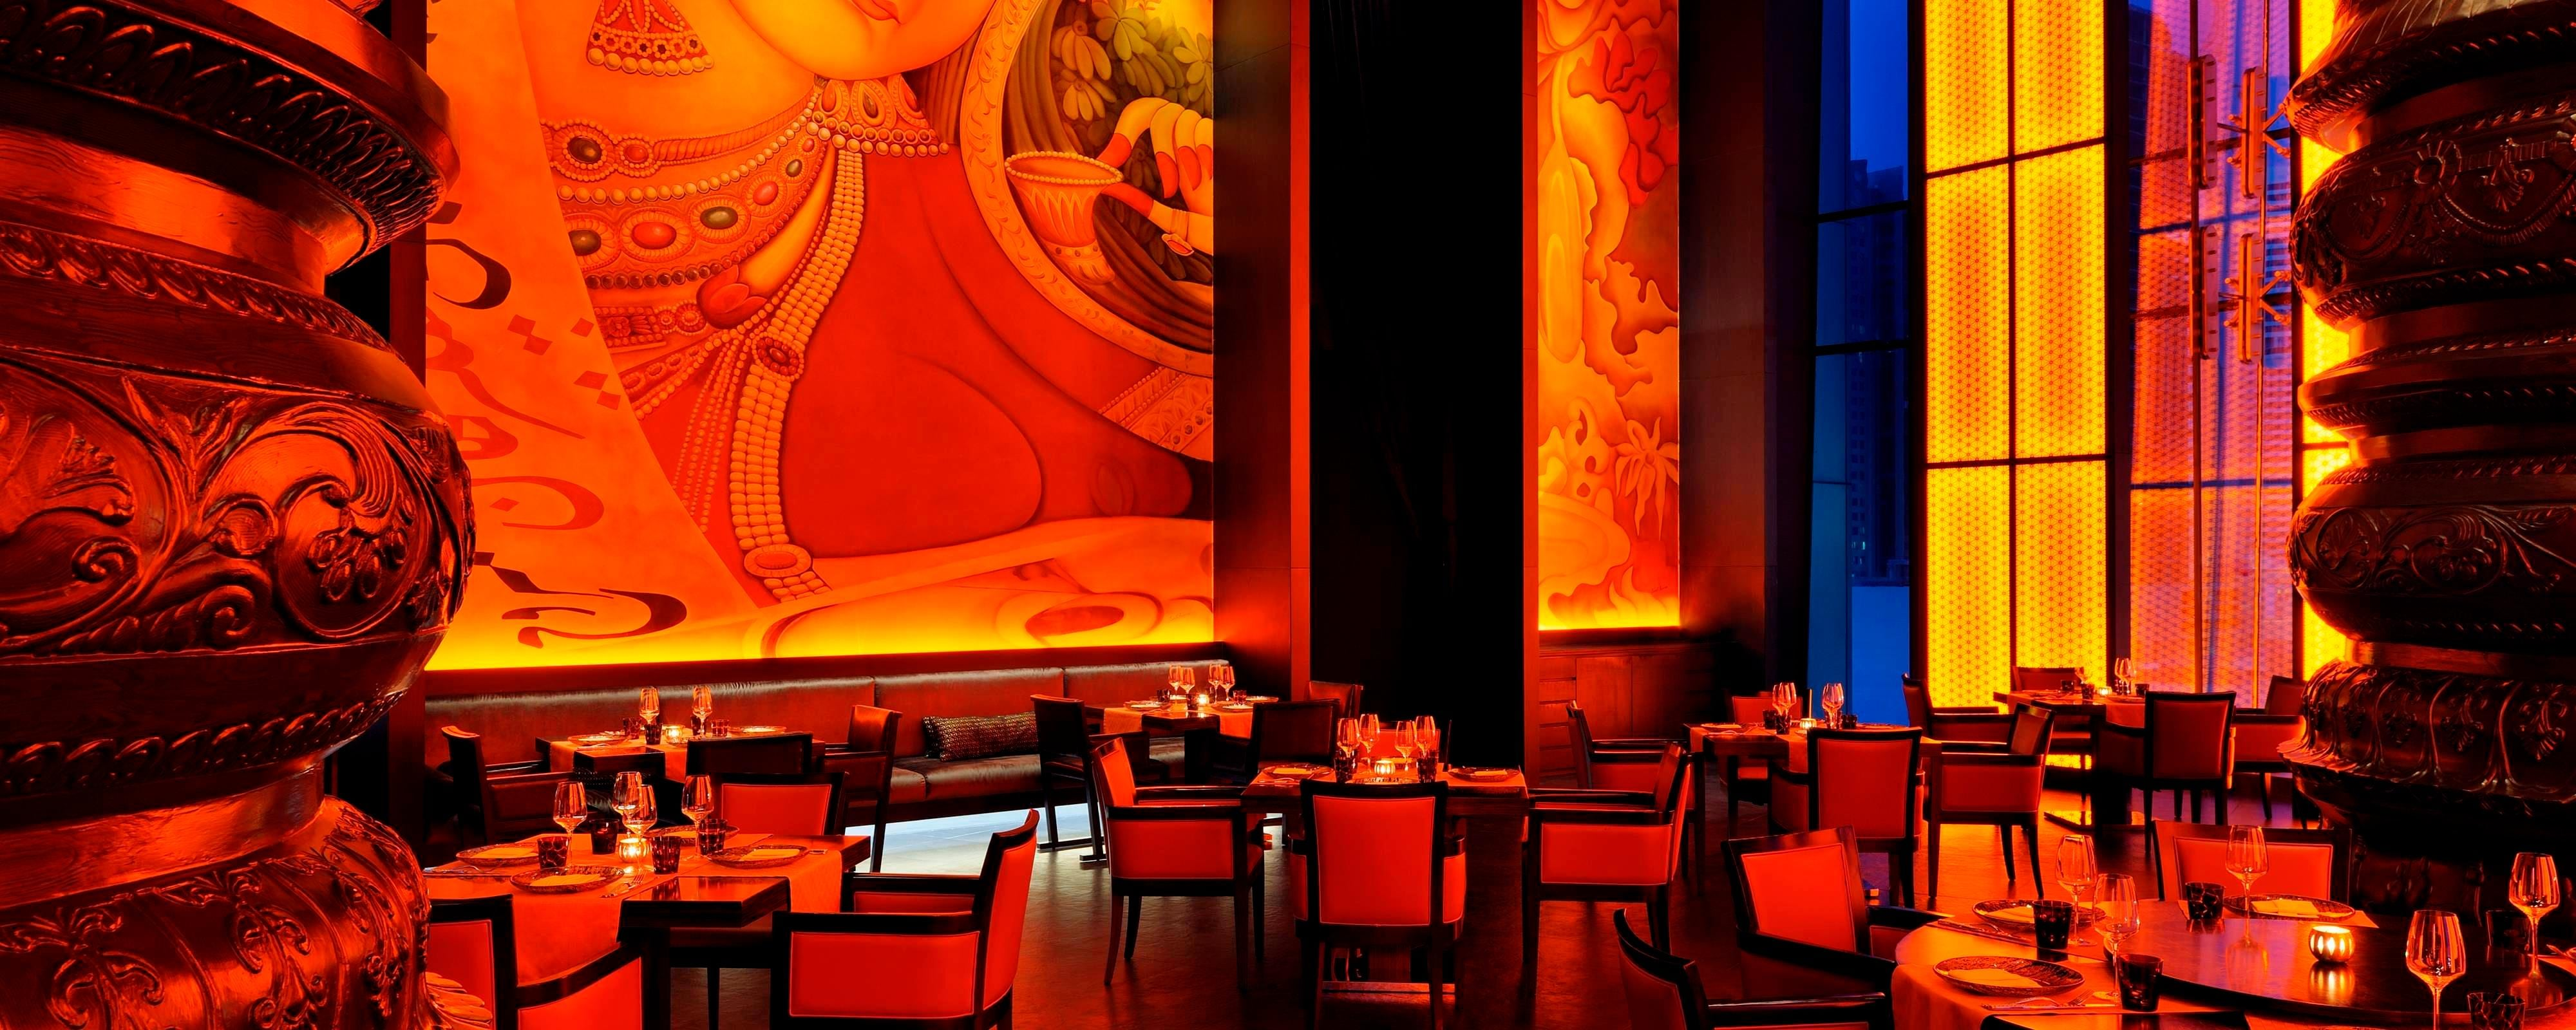 Jw Marriott Marquis Dubai Indian Restaurant